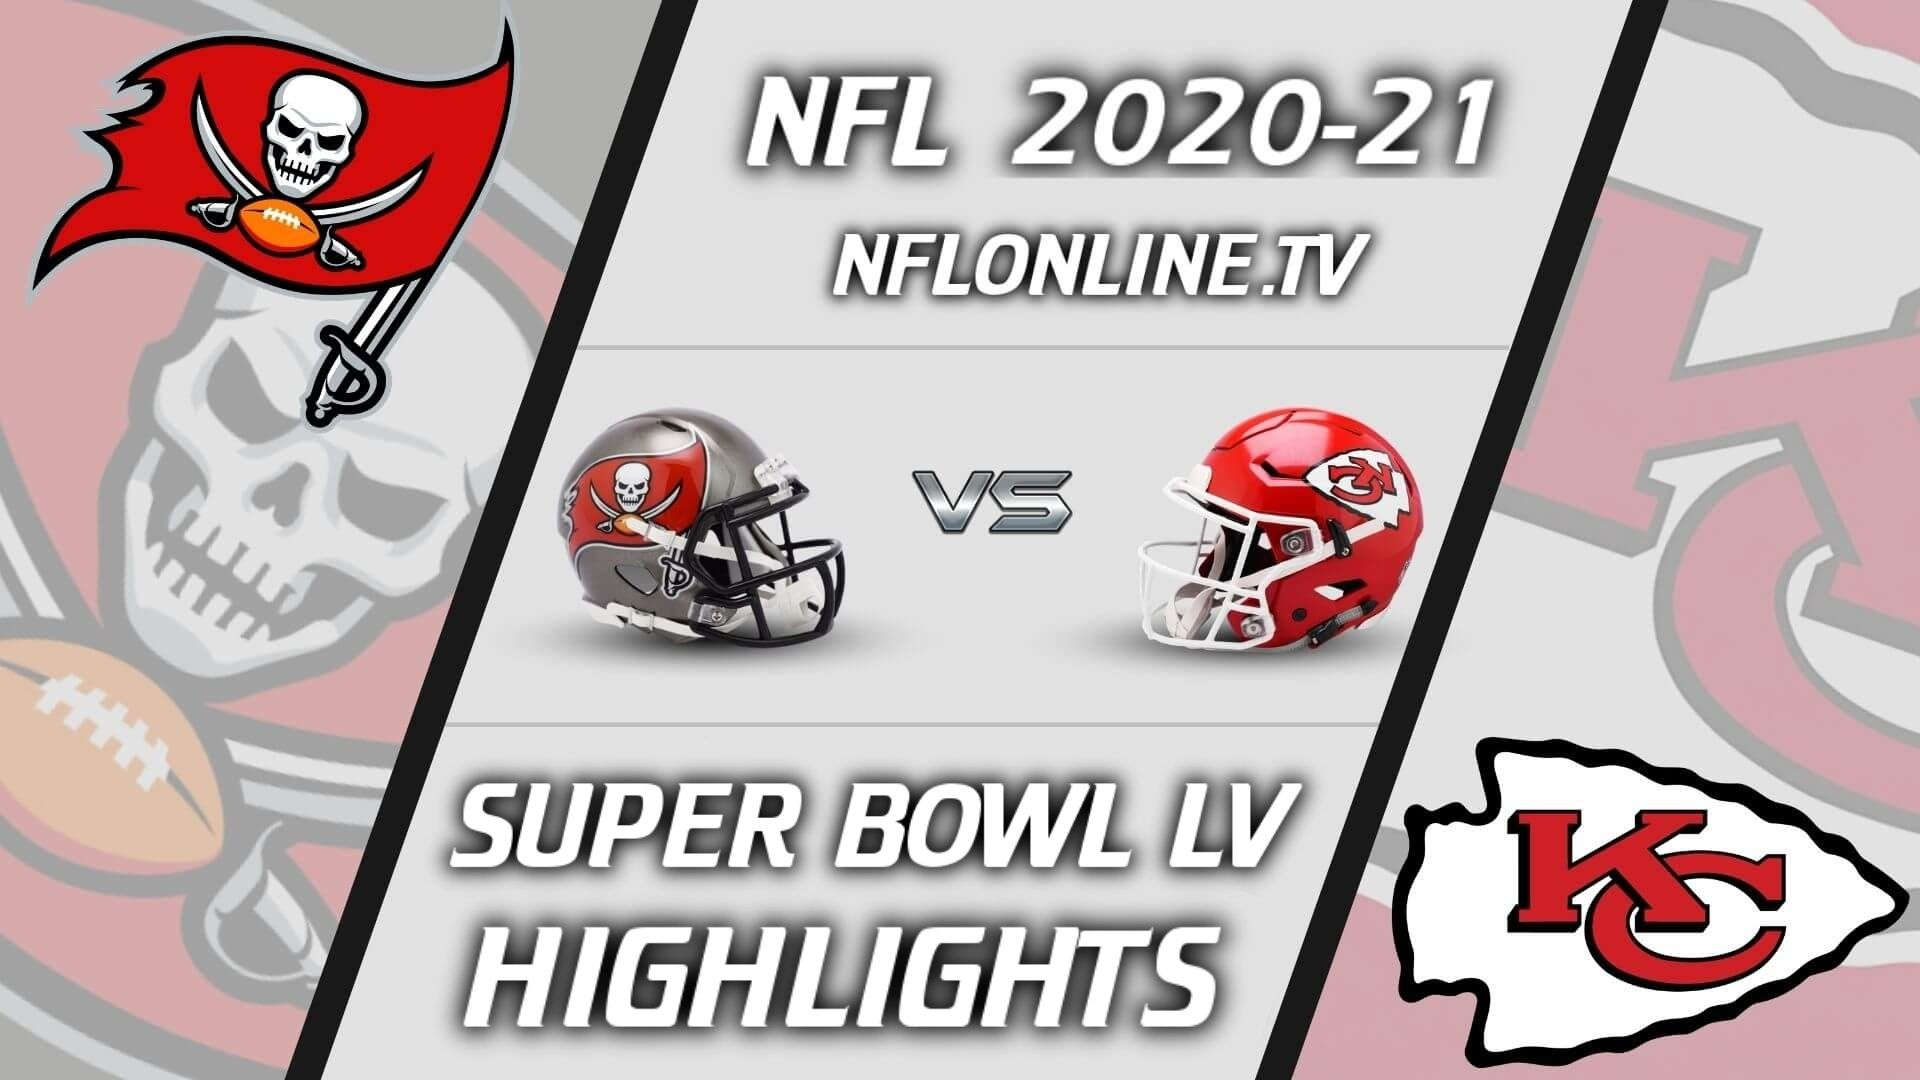 Buccaneers Vs Chiefs Highlights 2021 Super Bowl LV